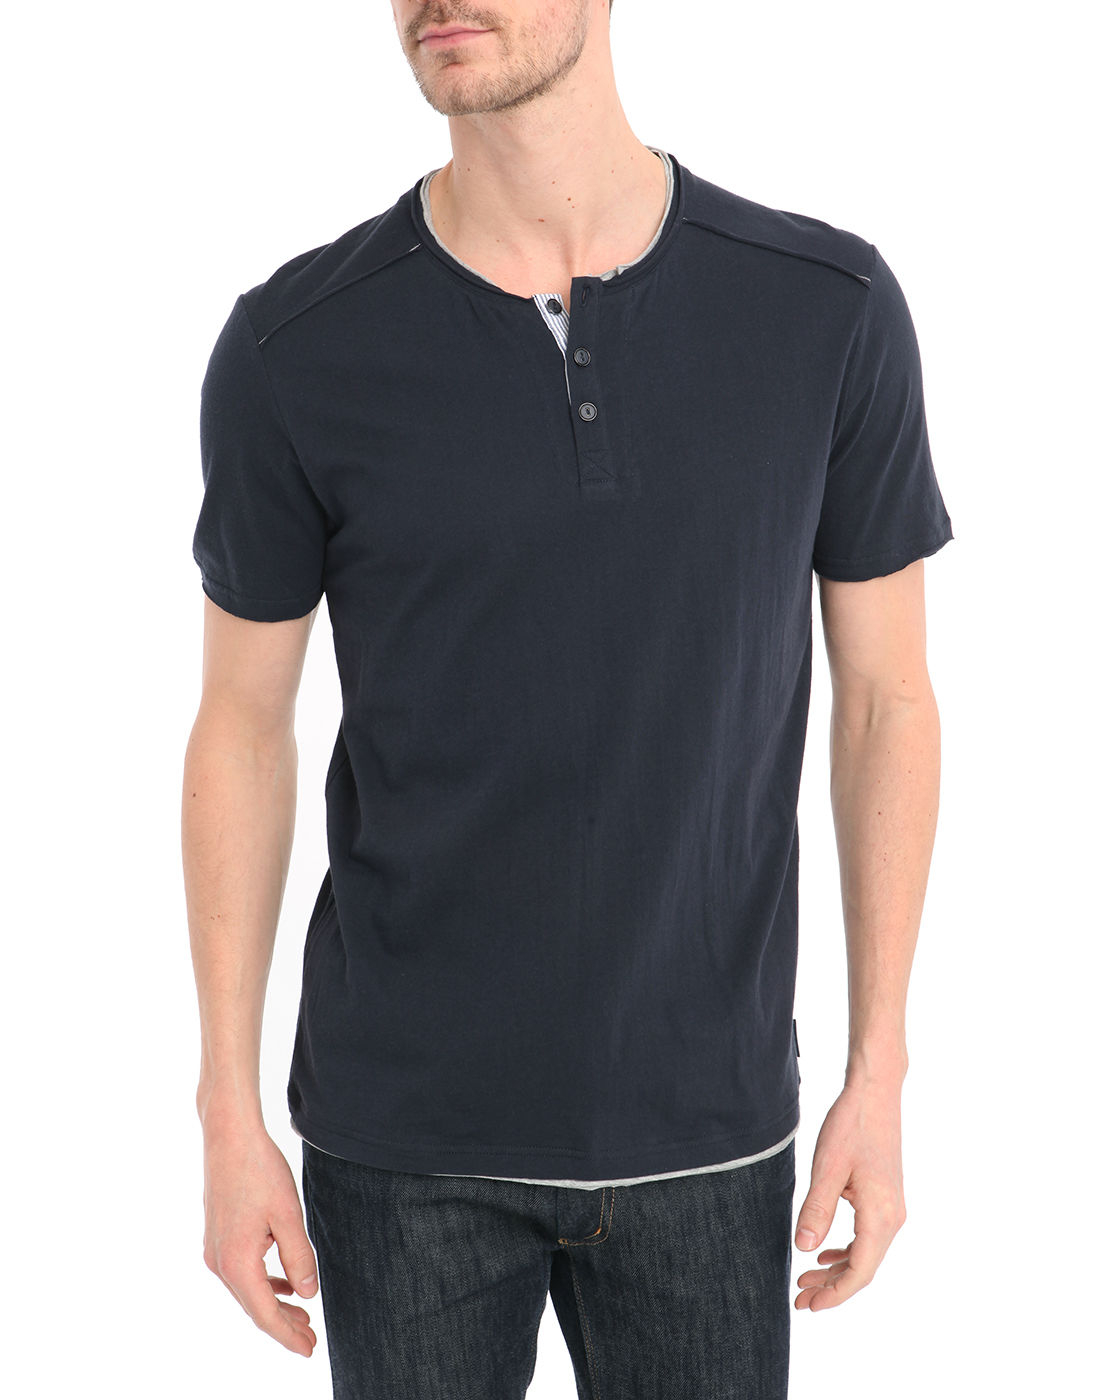 Harris wilson navy t shirt with double button up collar in for Three button collar shirts